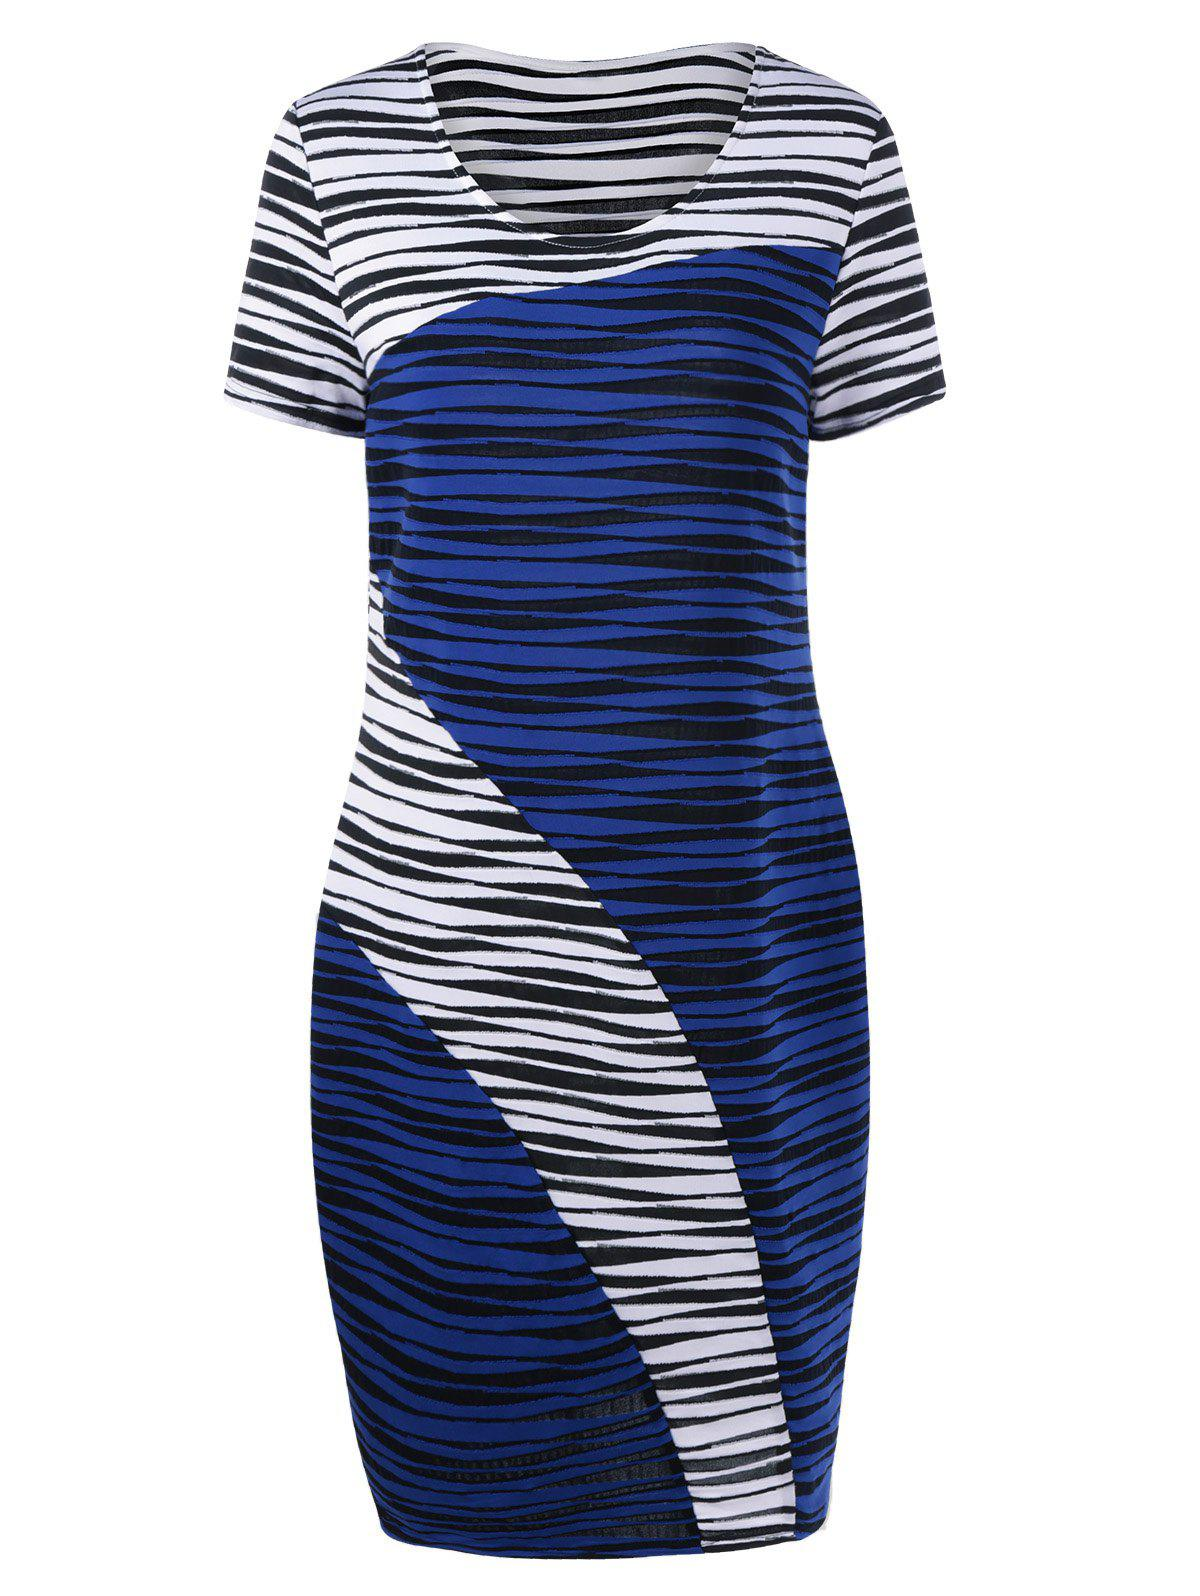 Plus Size Striped Knee Length Tight Dress - BLUE/WHITE 4XL